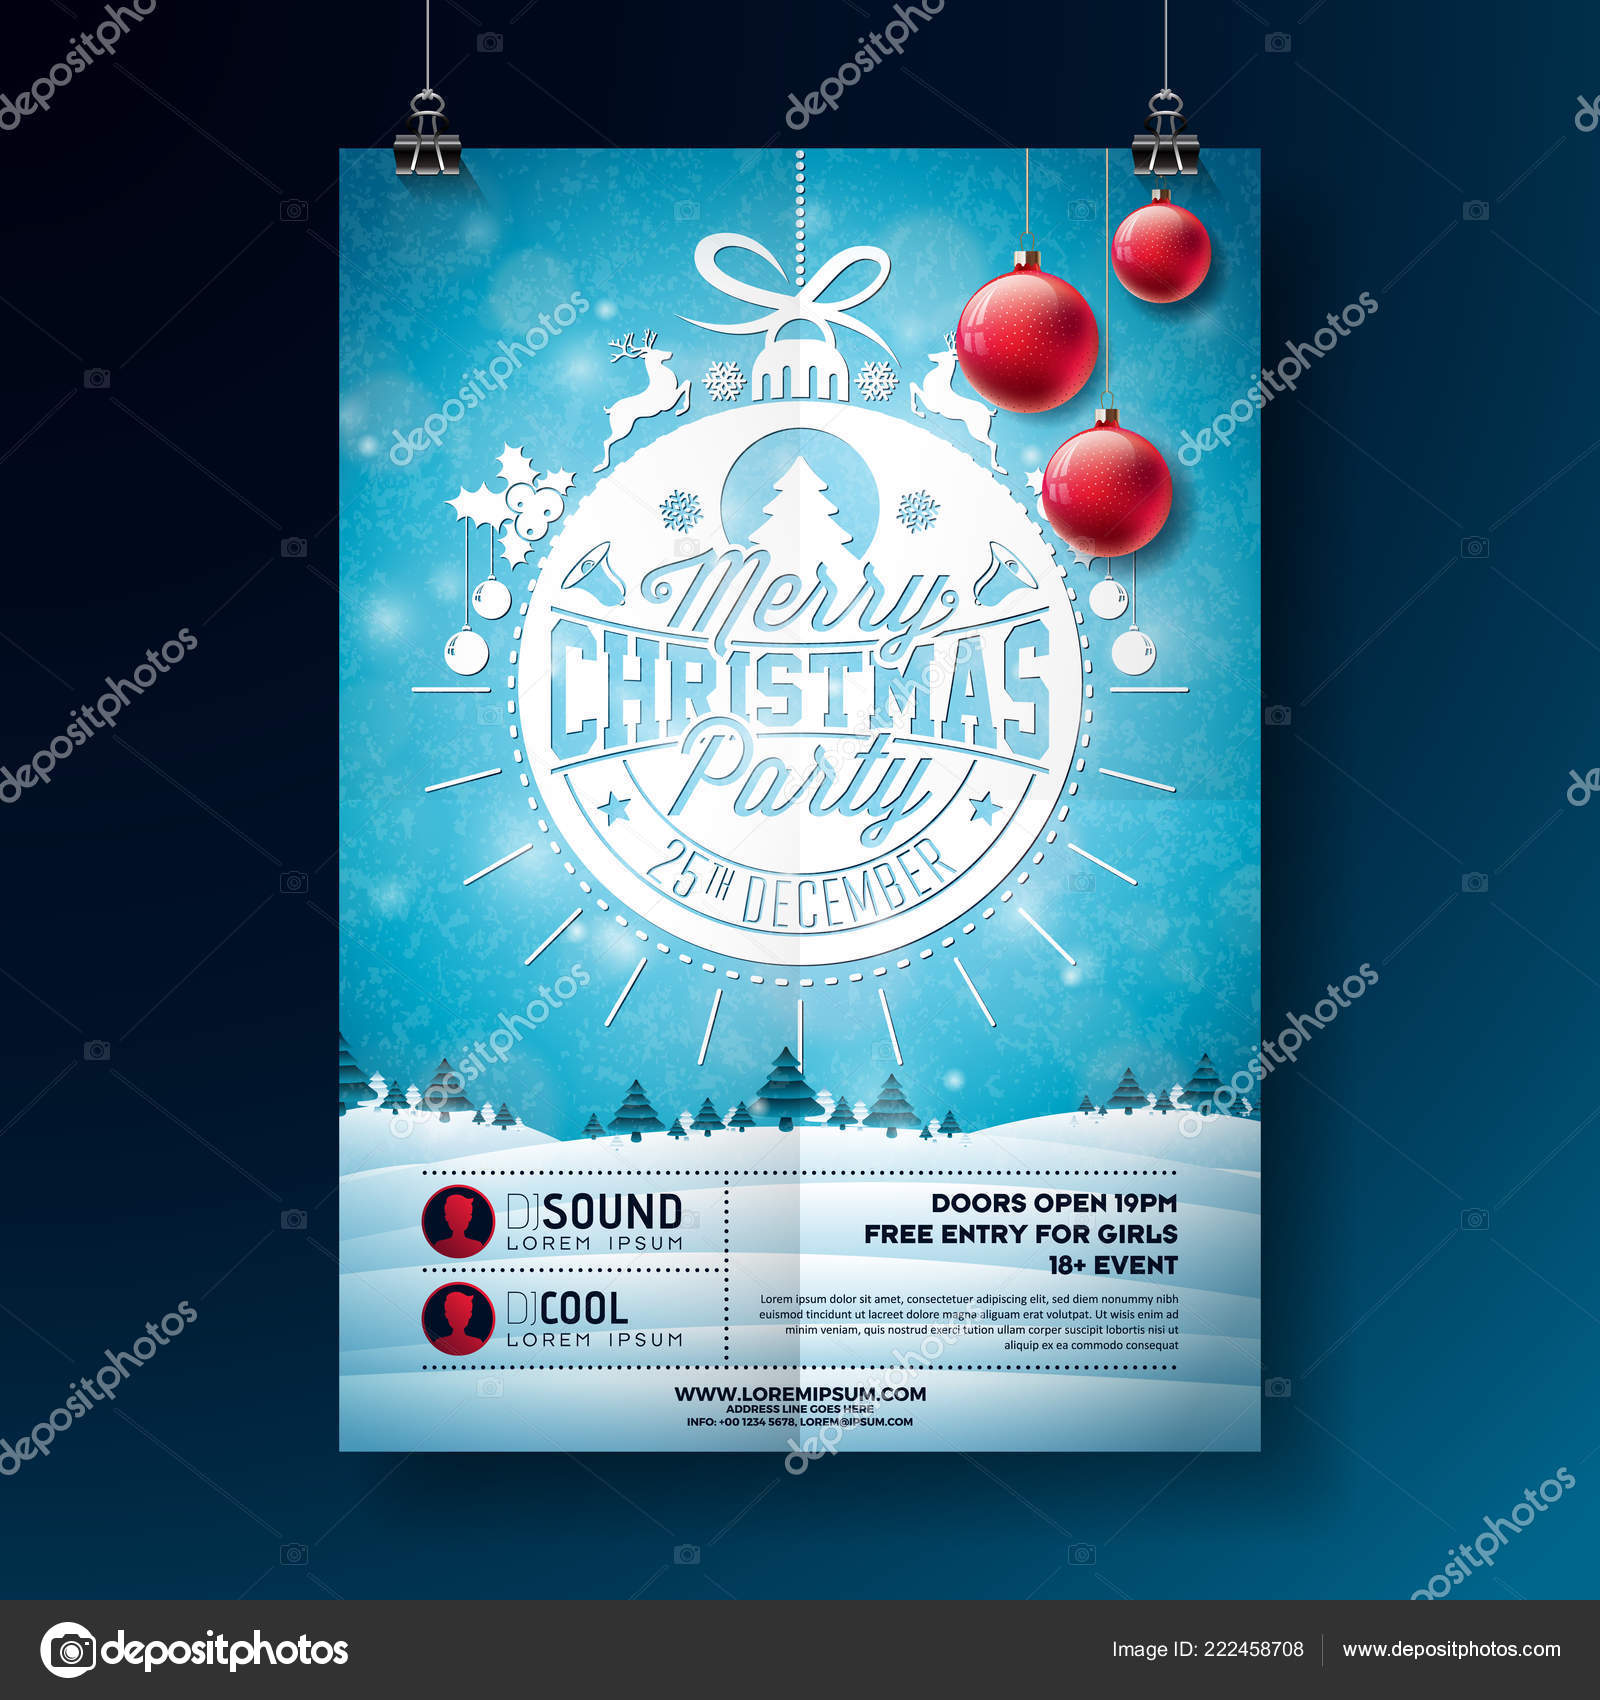 Christmas Party Flyer.Christmas Party Flyer Illustration With Typography Lettering